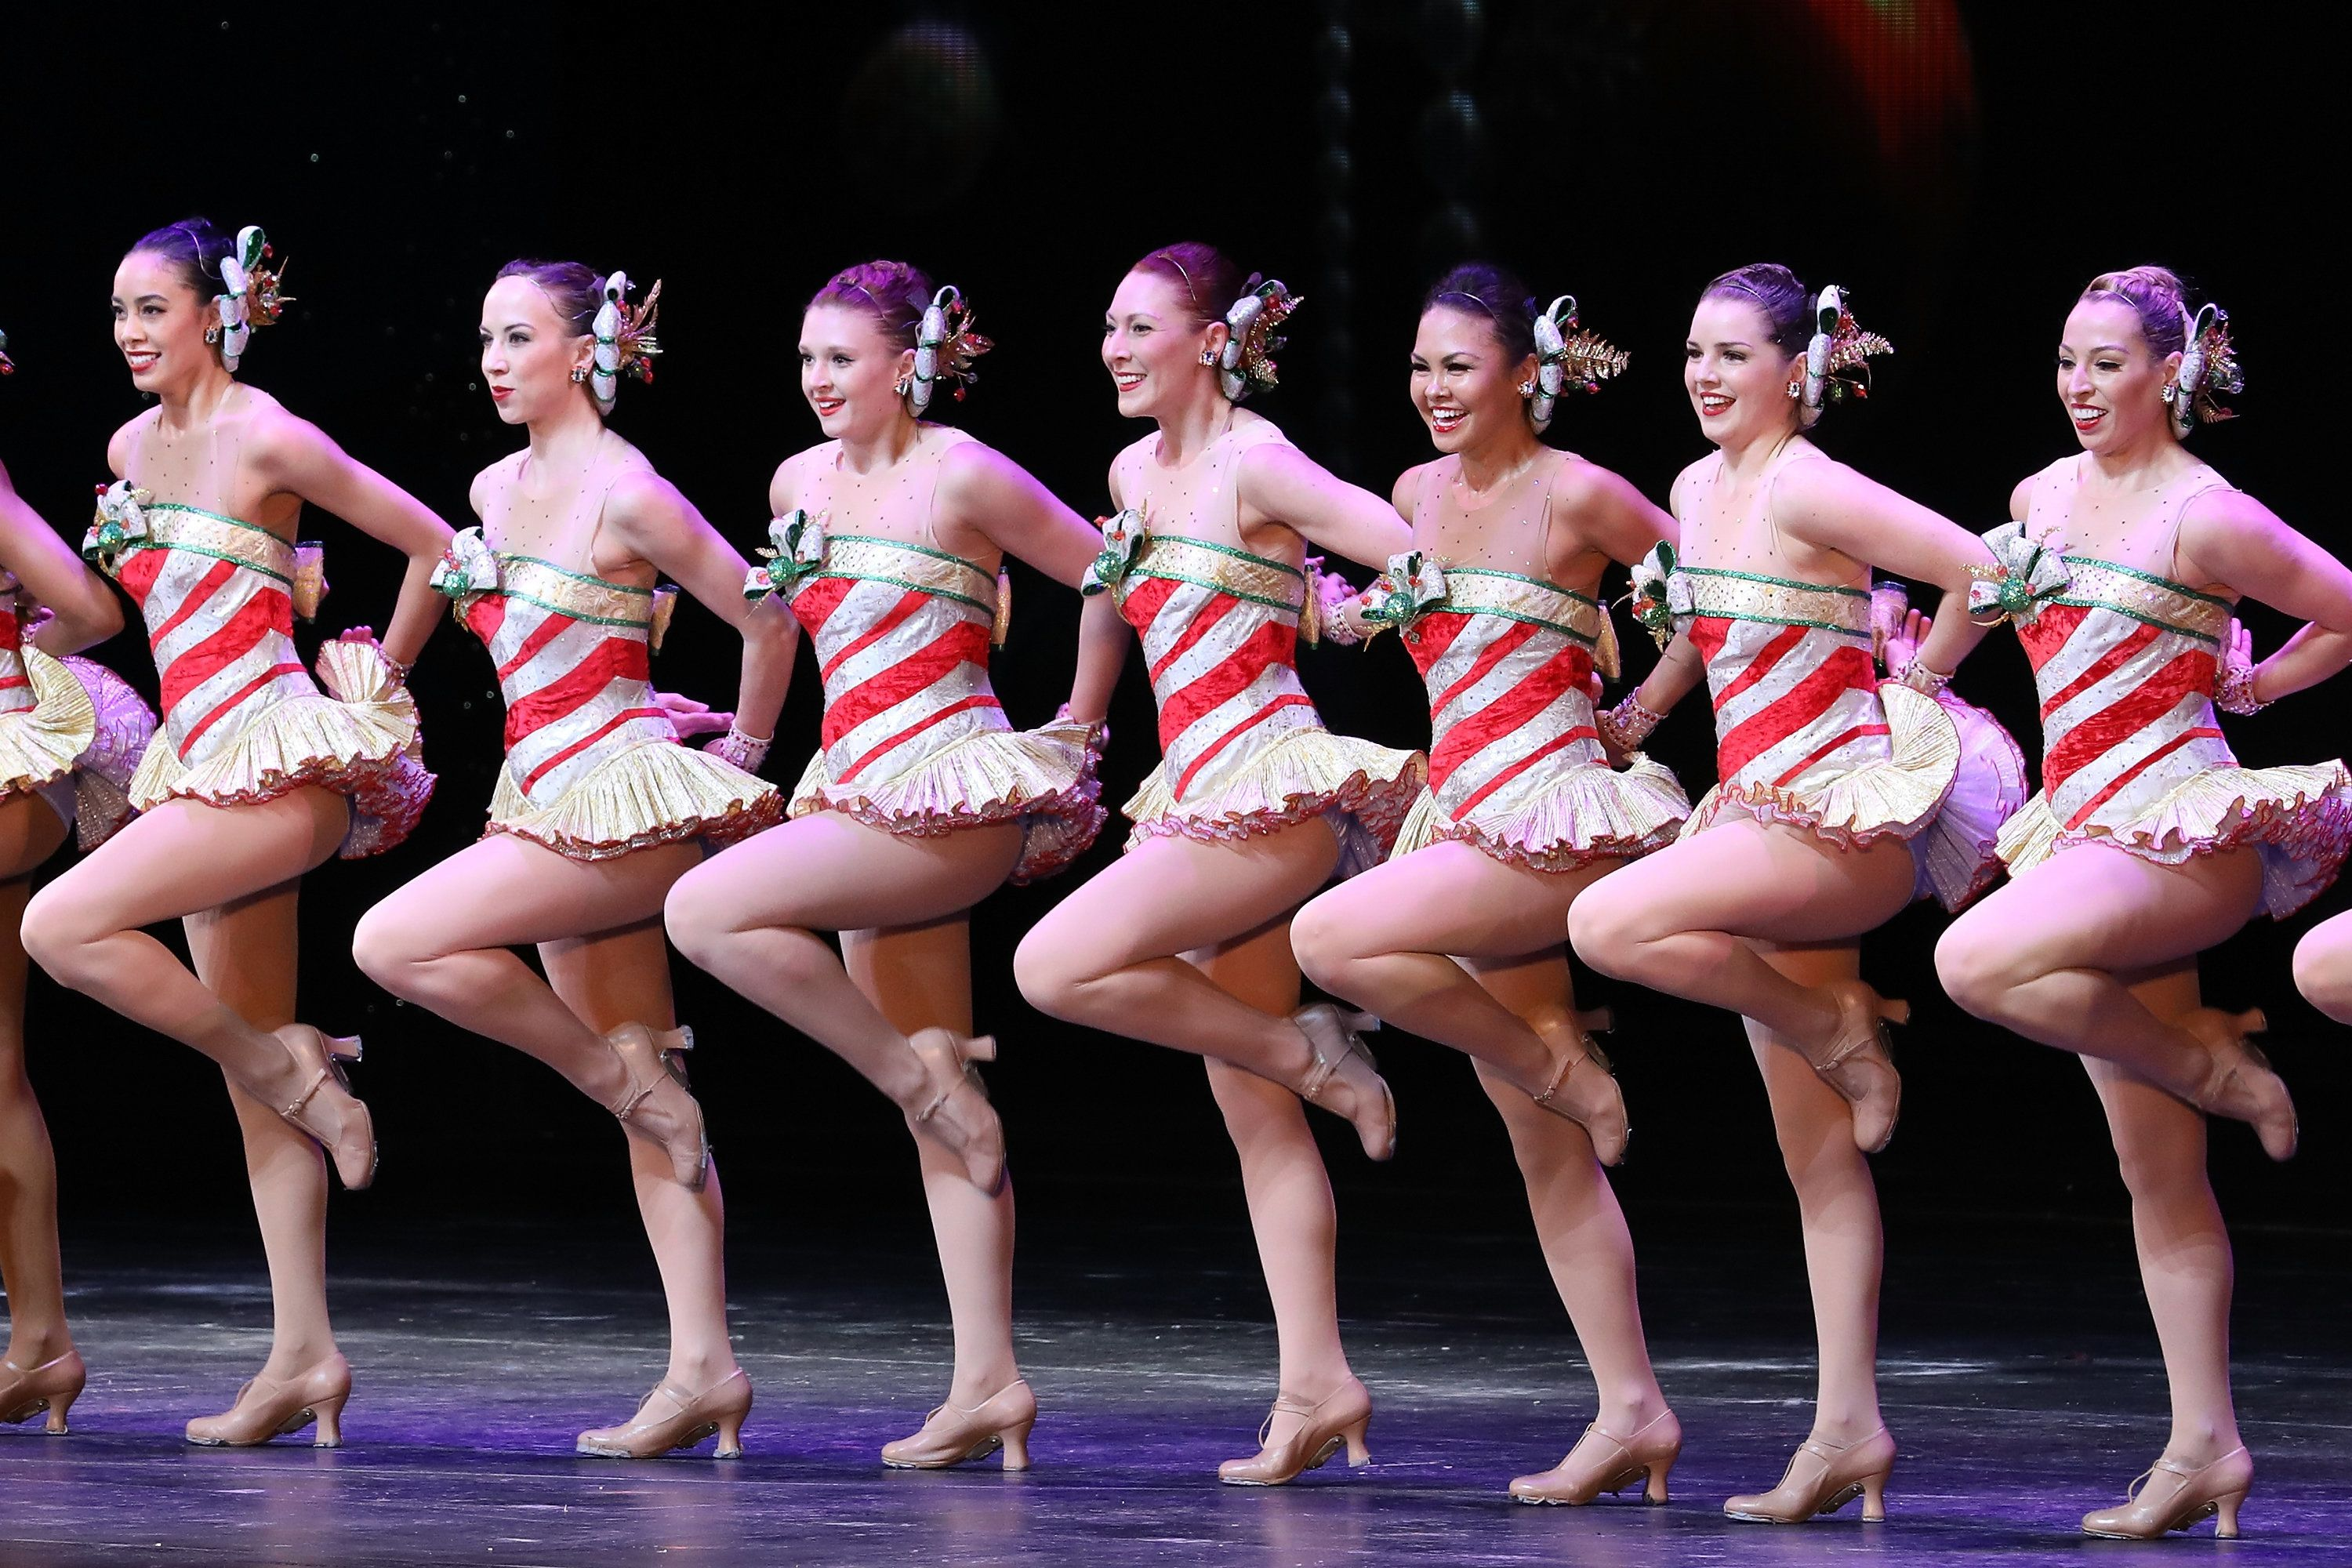 The Rockettes perform on stage on November 15, 2016.